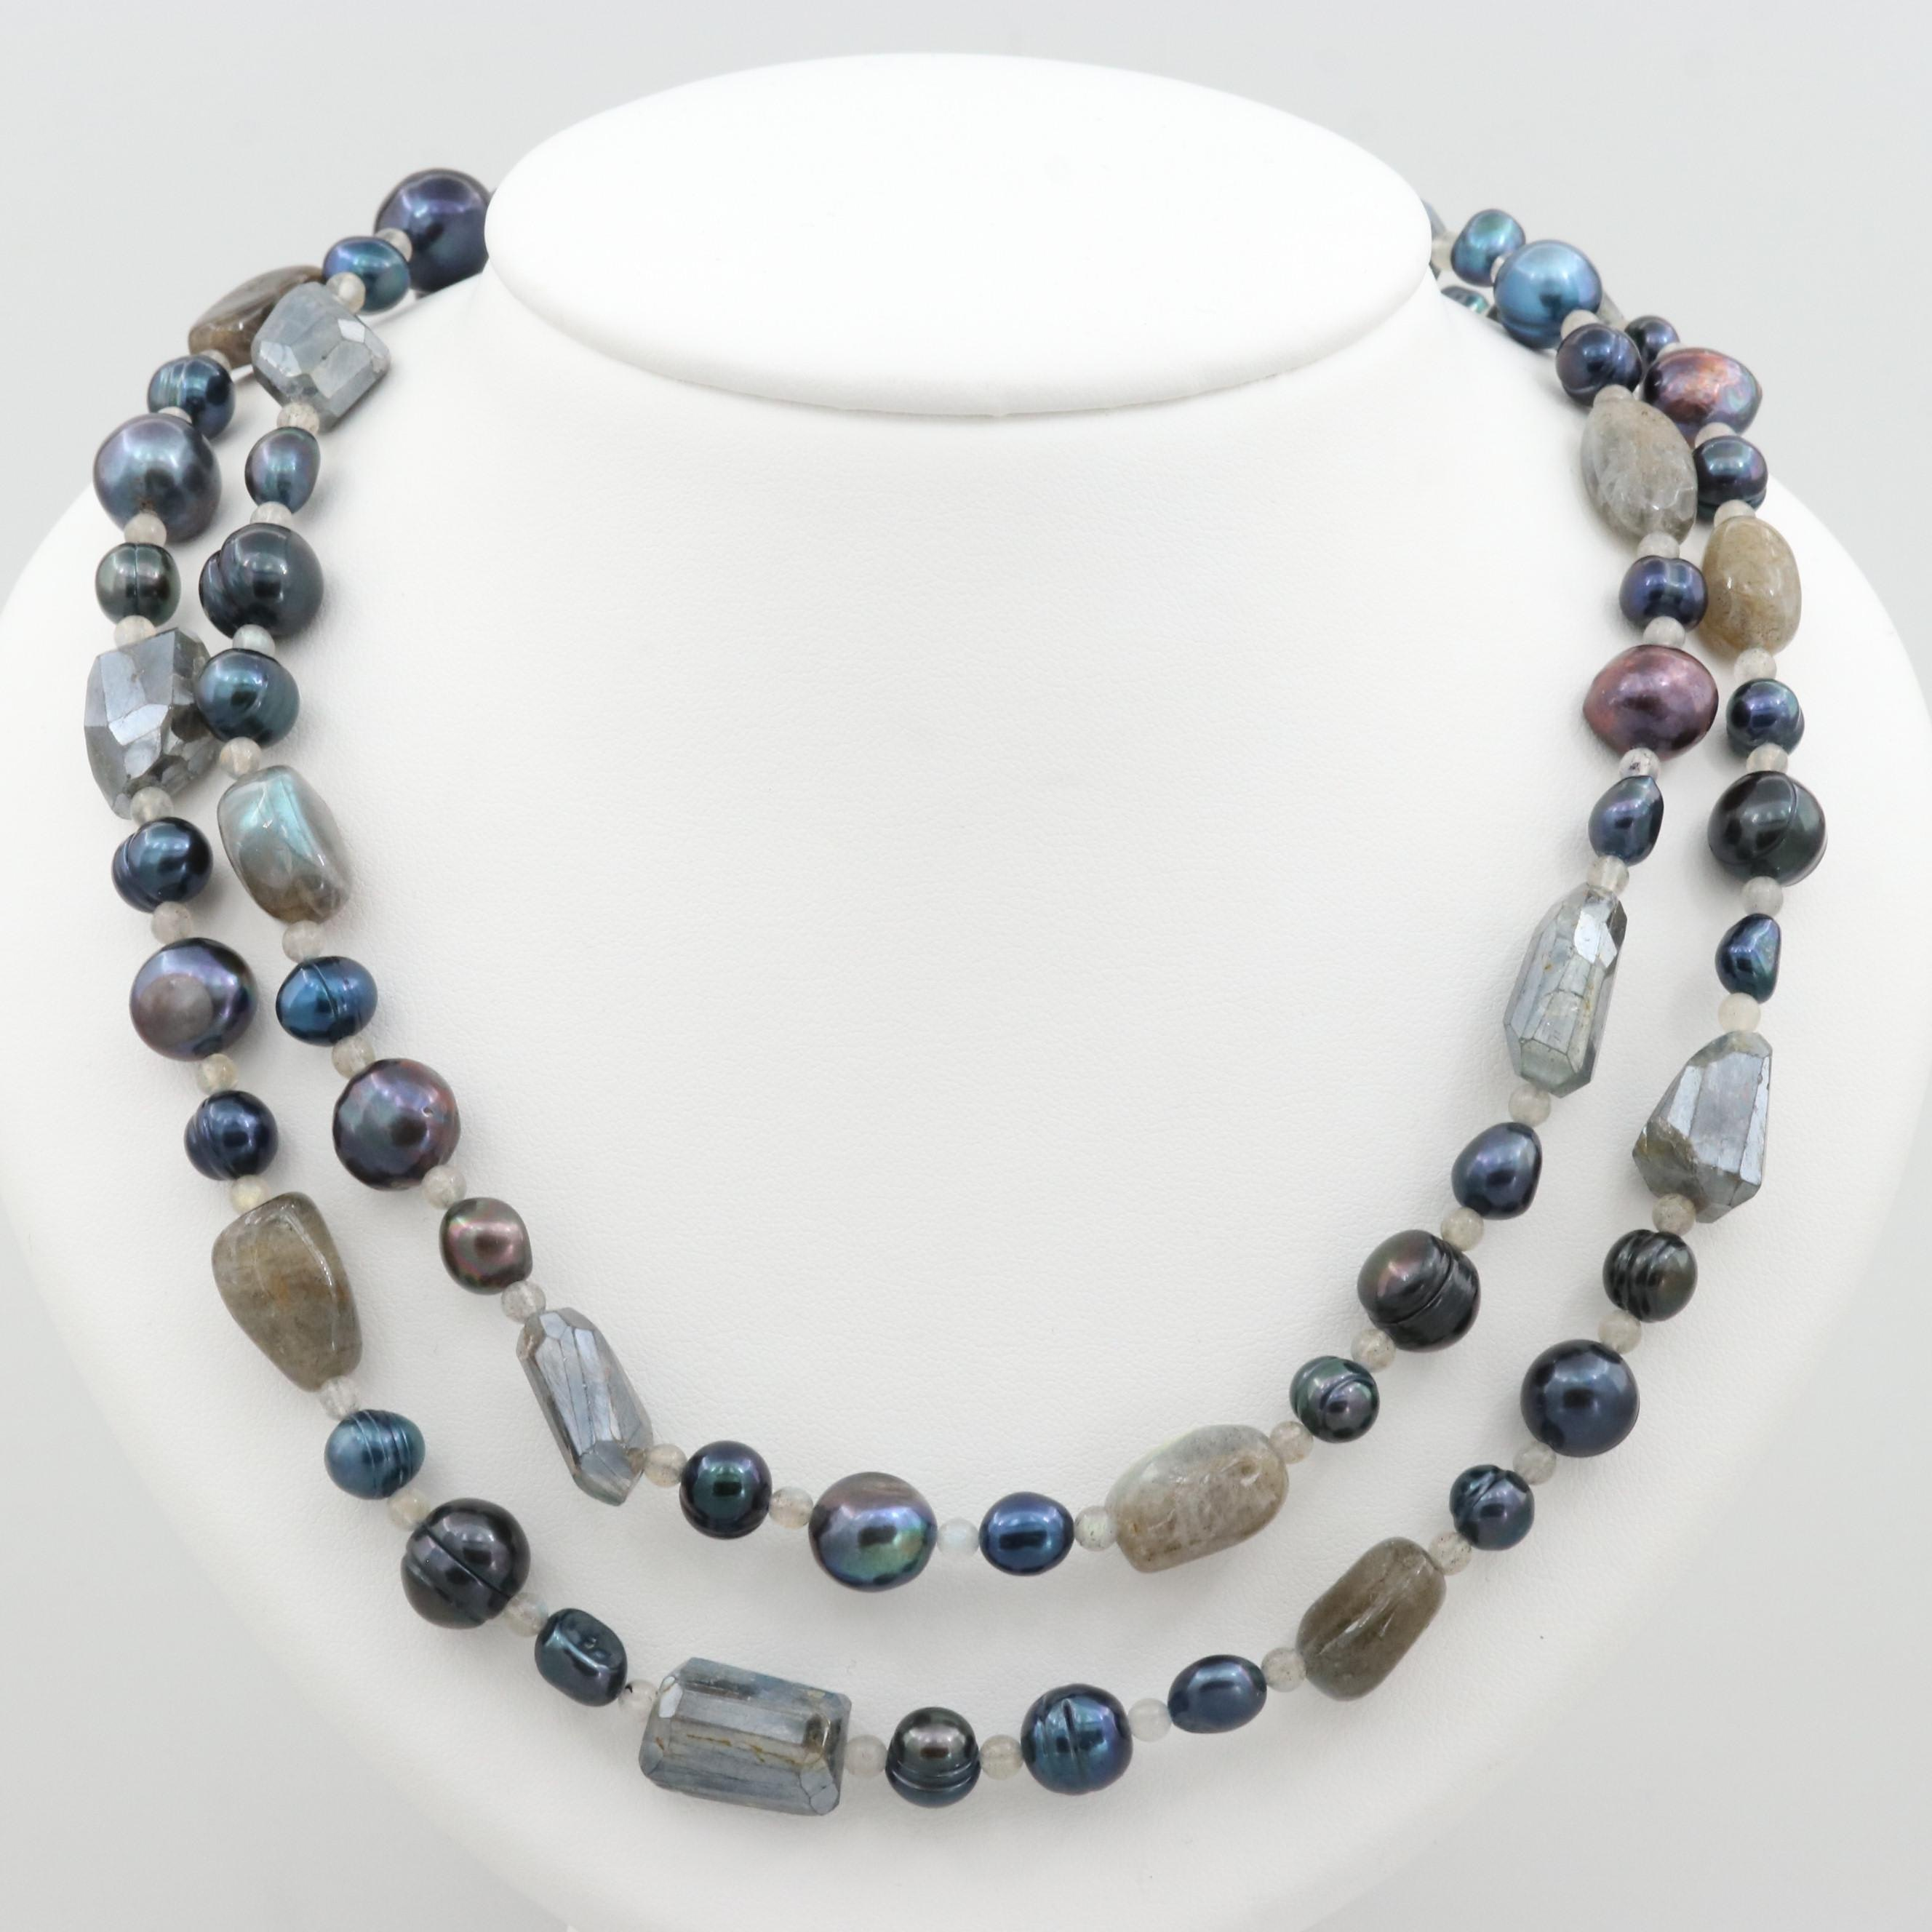 14K White Gold Labradorite and Cultured Pearl Beaded Necklace